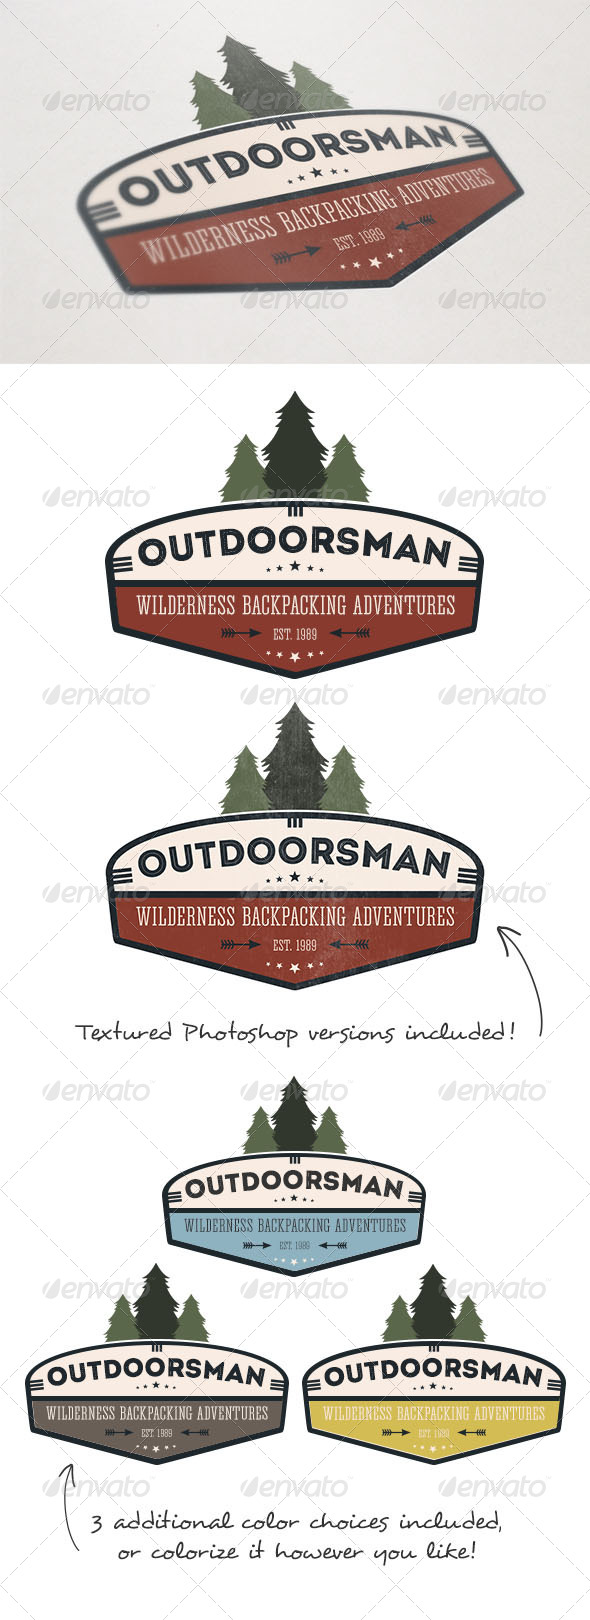 GraphicRiver Outdoorsman Backpacking Logo 5220213